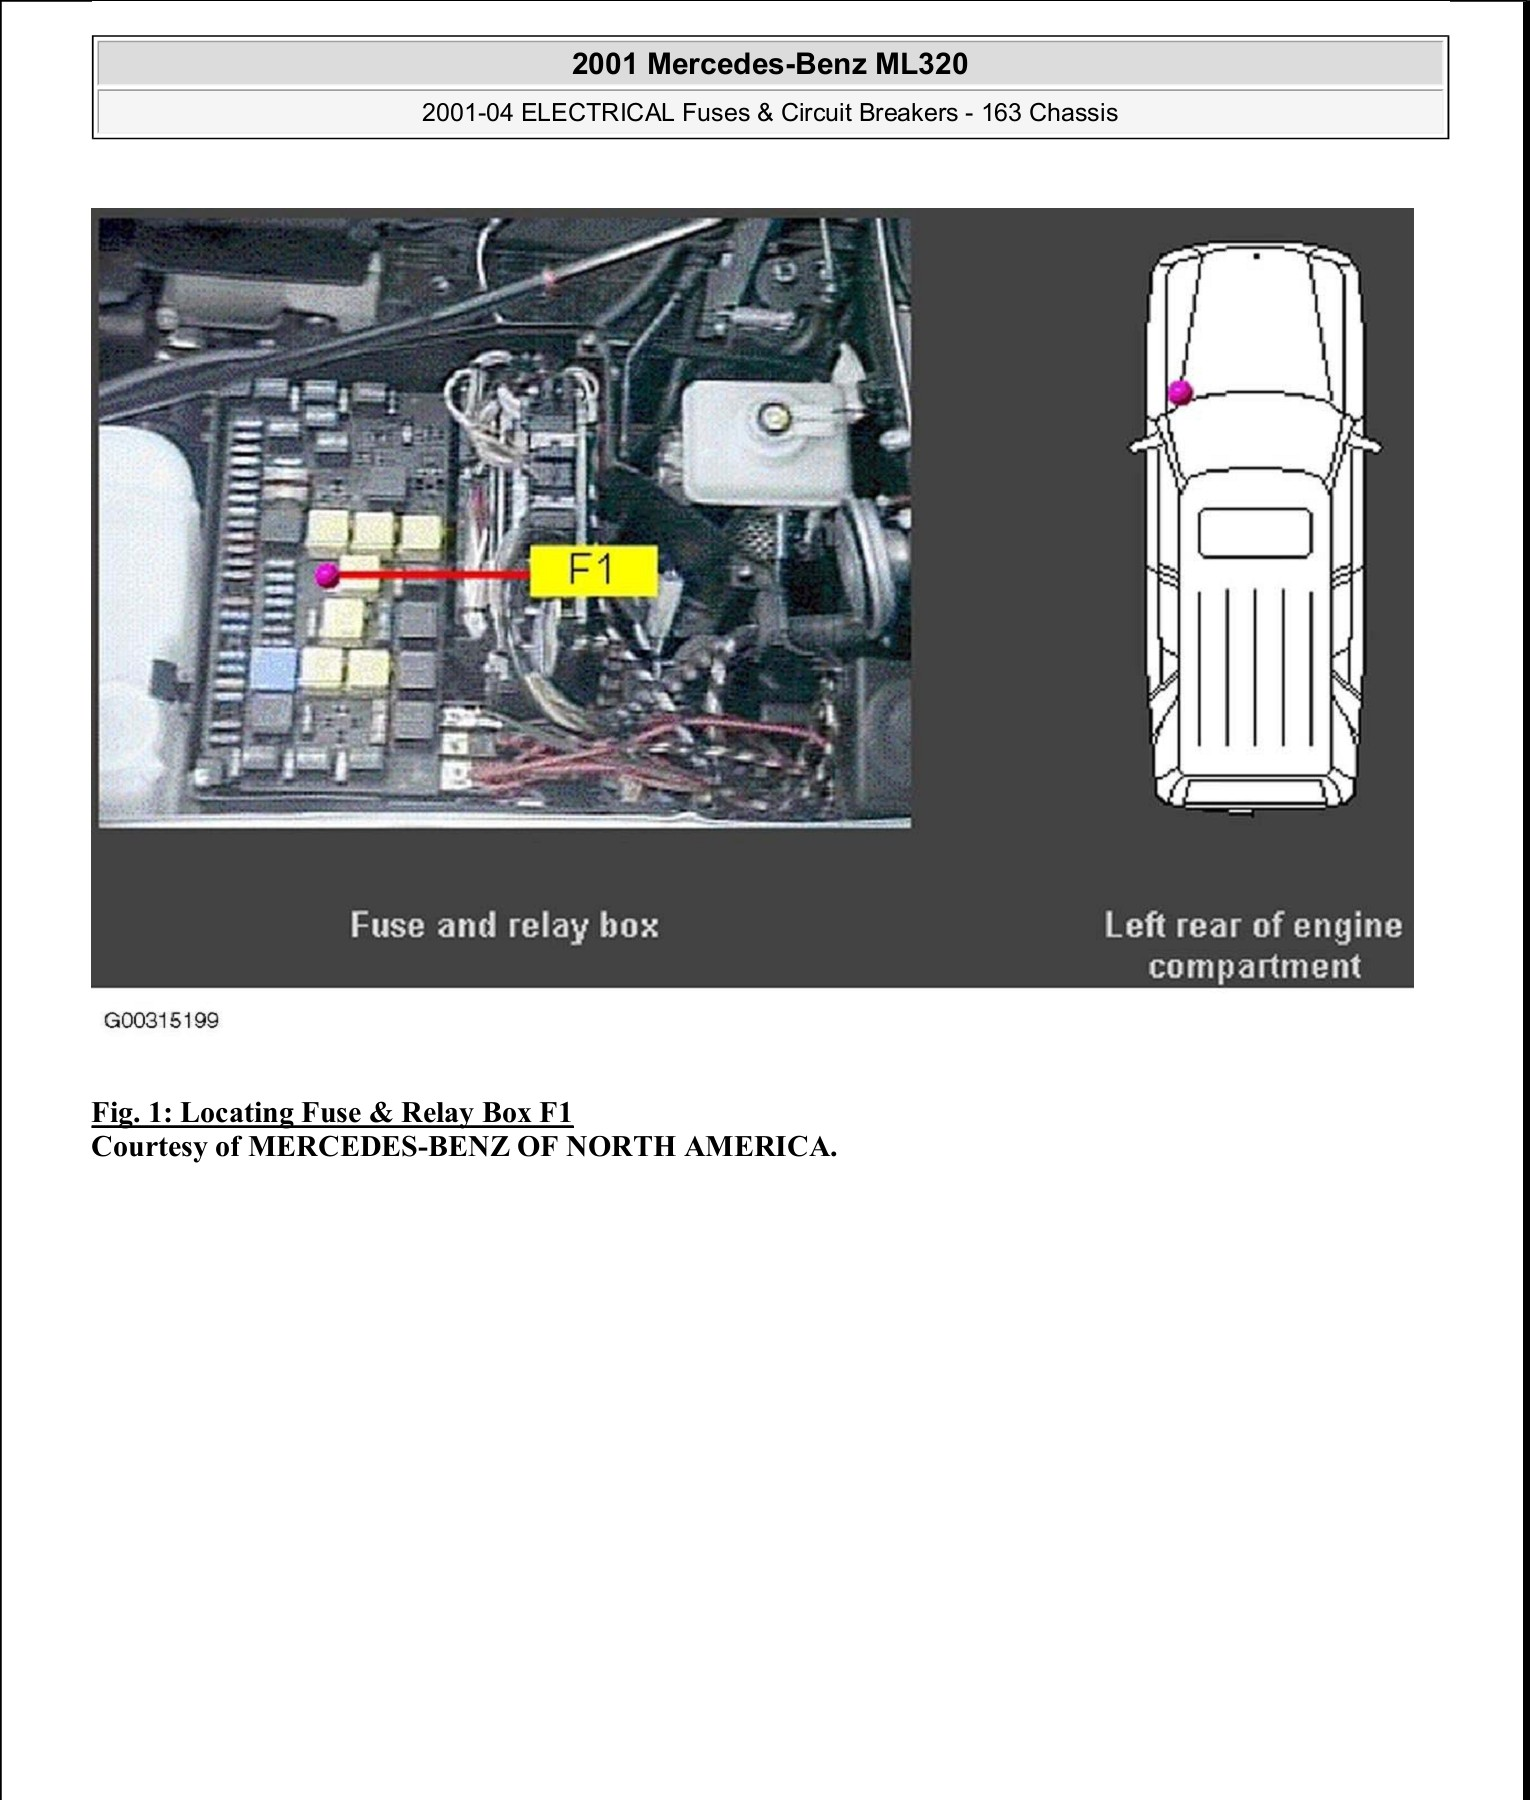 2001-04 electrical fuses & circuit breakers - 163 chassis pages 1 - 31 -  text version   anyflip